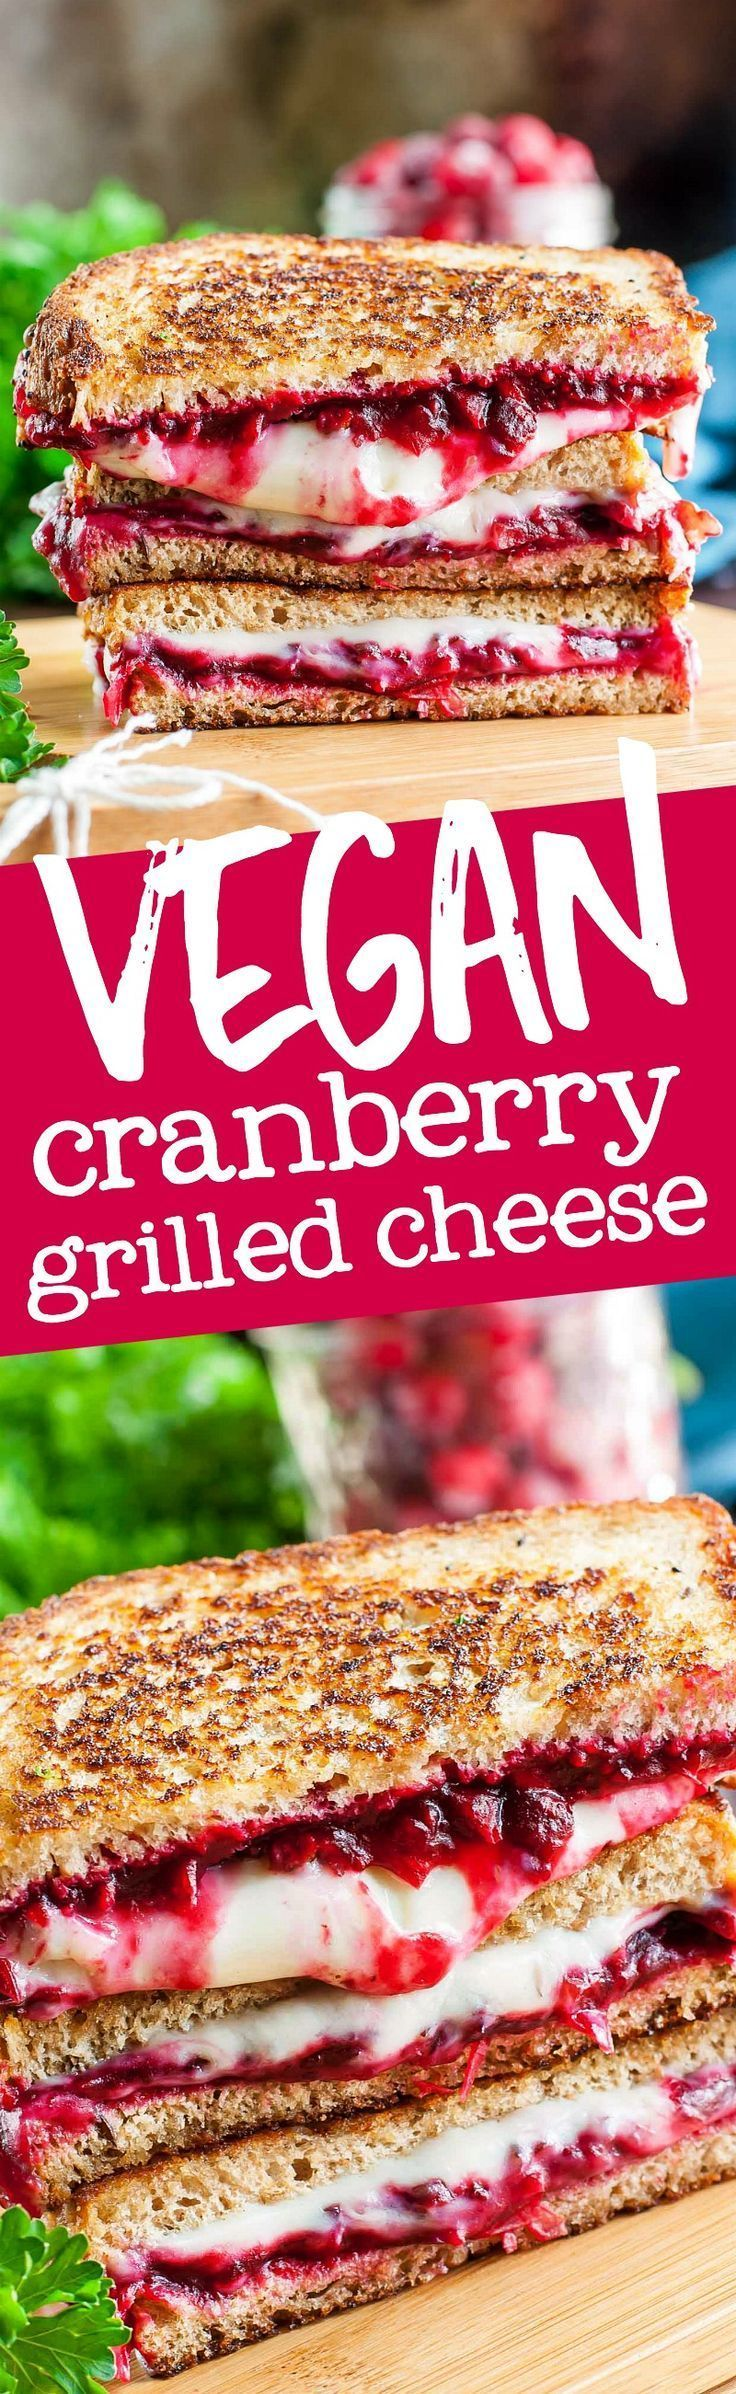 Snag some leftover cranberry sauce from your holiday meal ( Thanksgiving, I'm looking at you! ) and make this easy cheezy VEGAN cranberry grilled cheese!